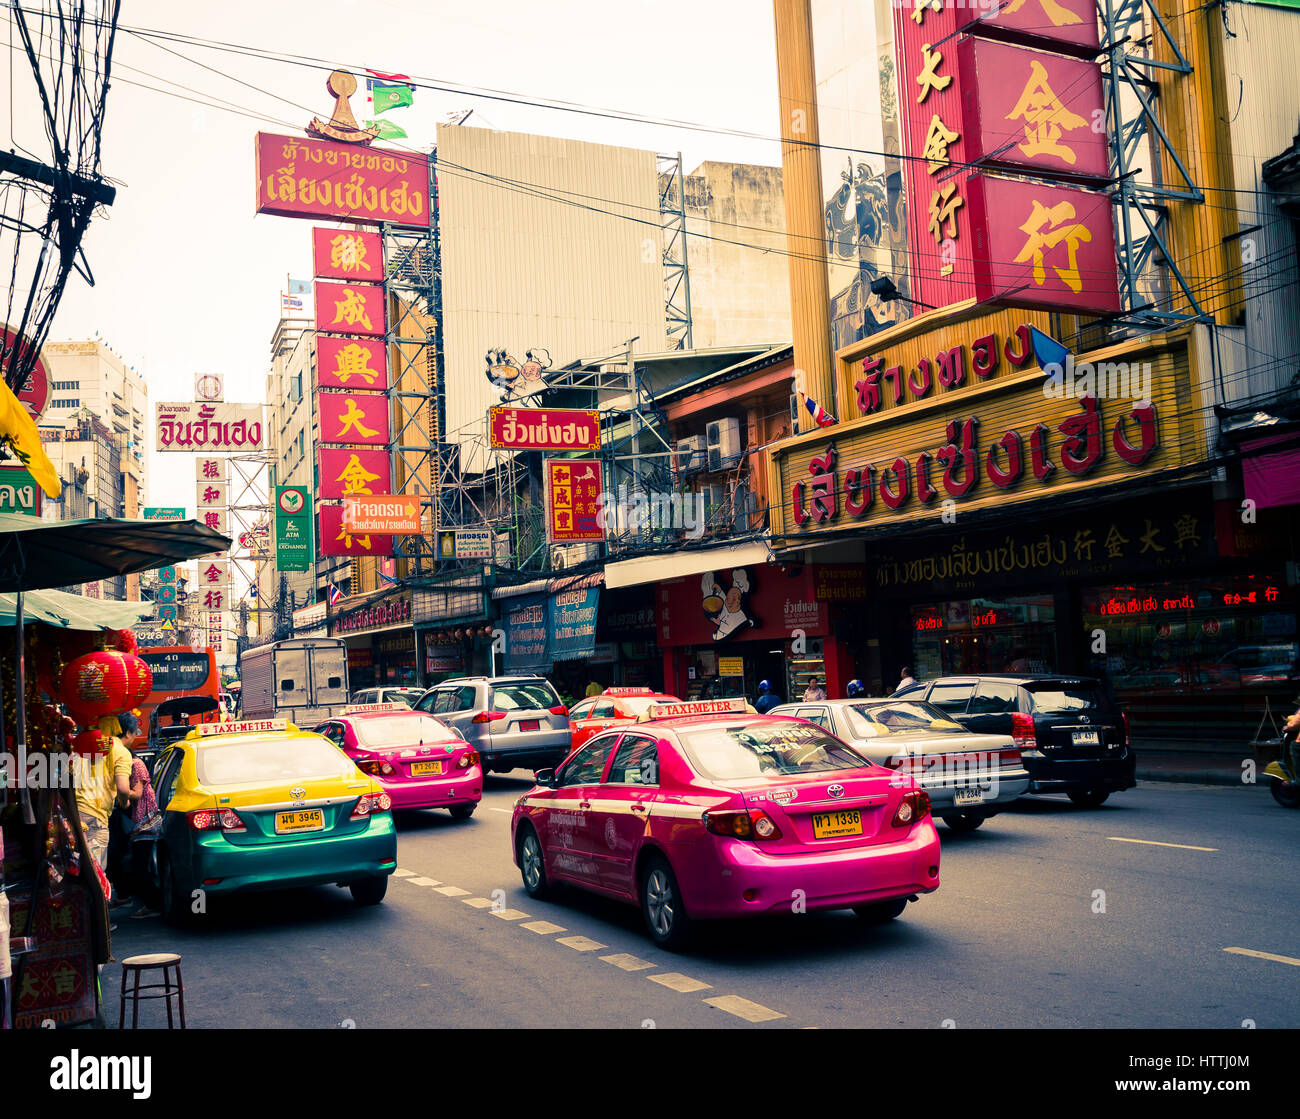 Taxis in Chinatown. Bangkok, Thailand. - Stock Image